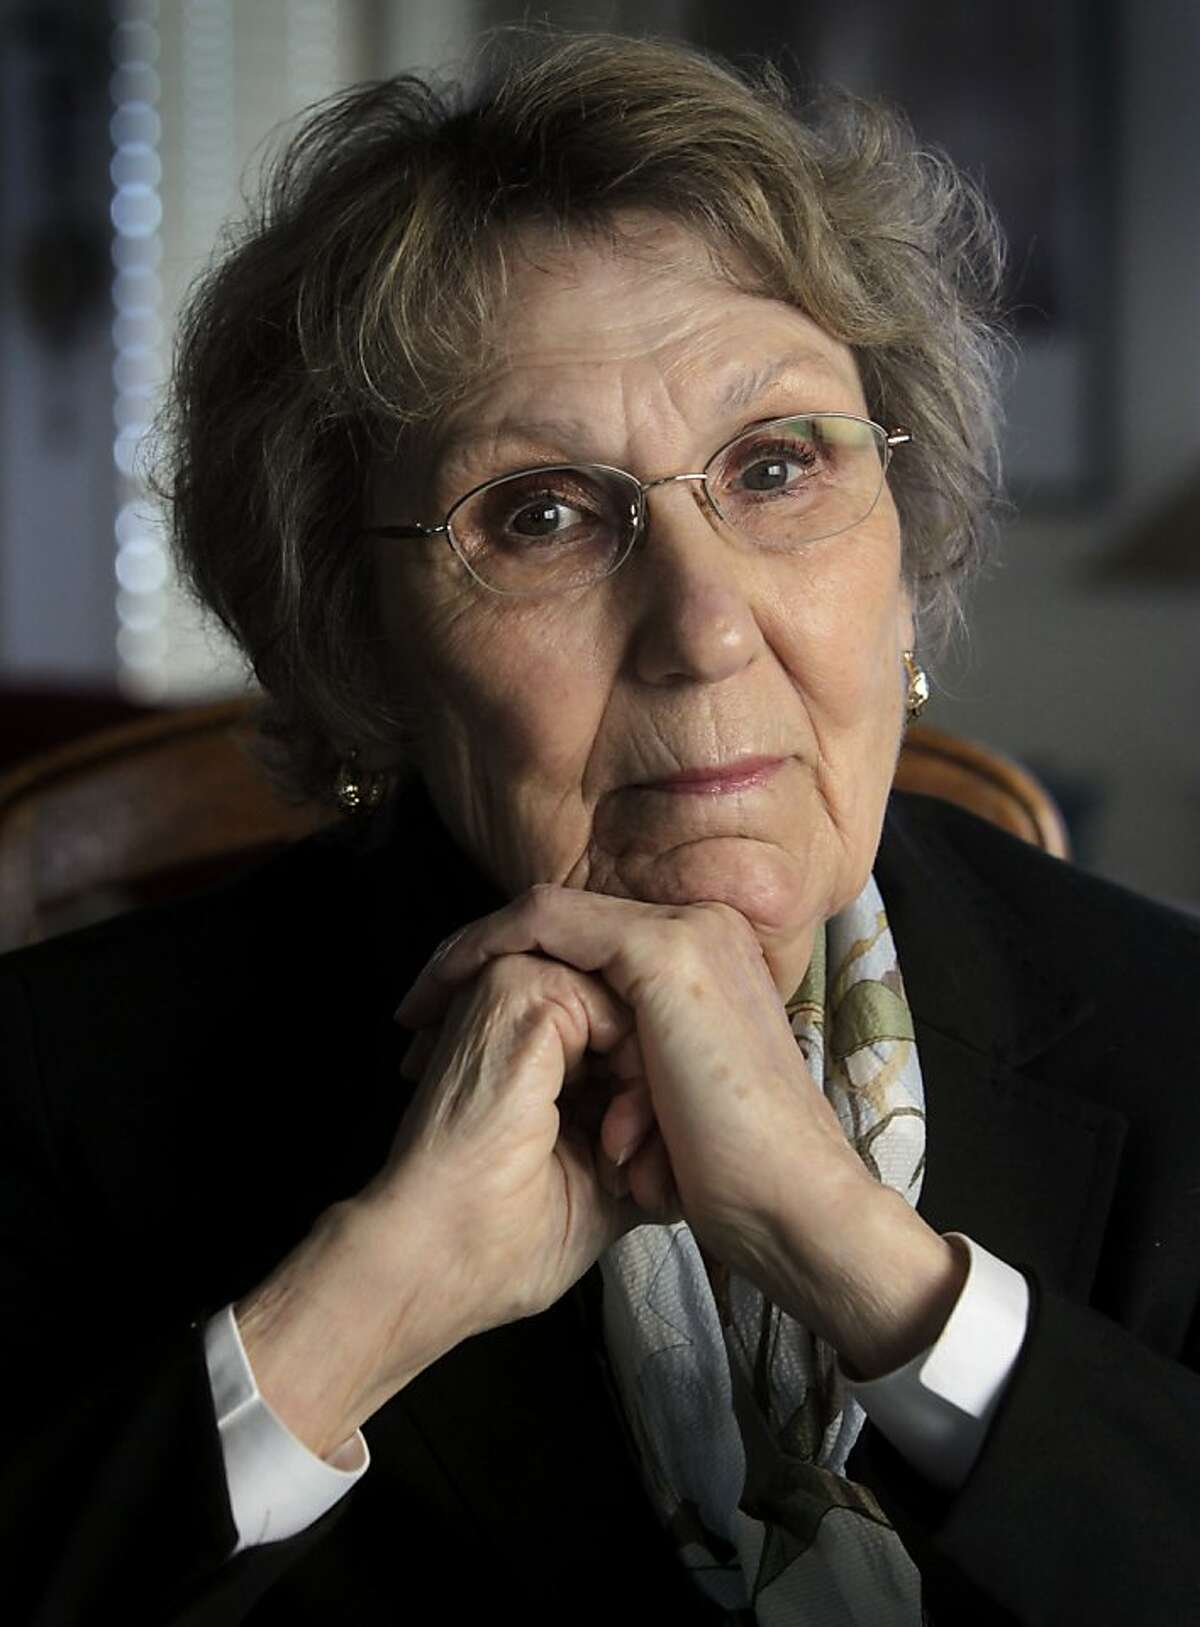 Helen Karr is seen at her San Mateo County home on Tuesday, March 26, 2013. Karr is a special assistant for the San Francisco District Attorney's office in elder financial abuse cases.